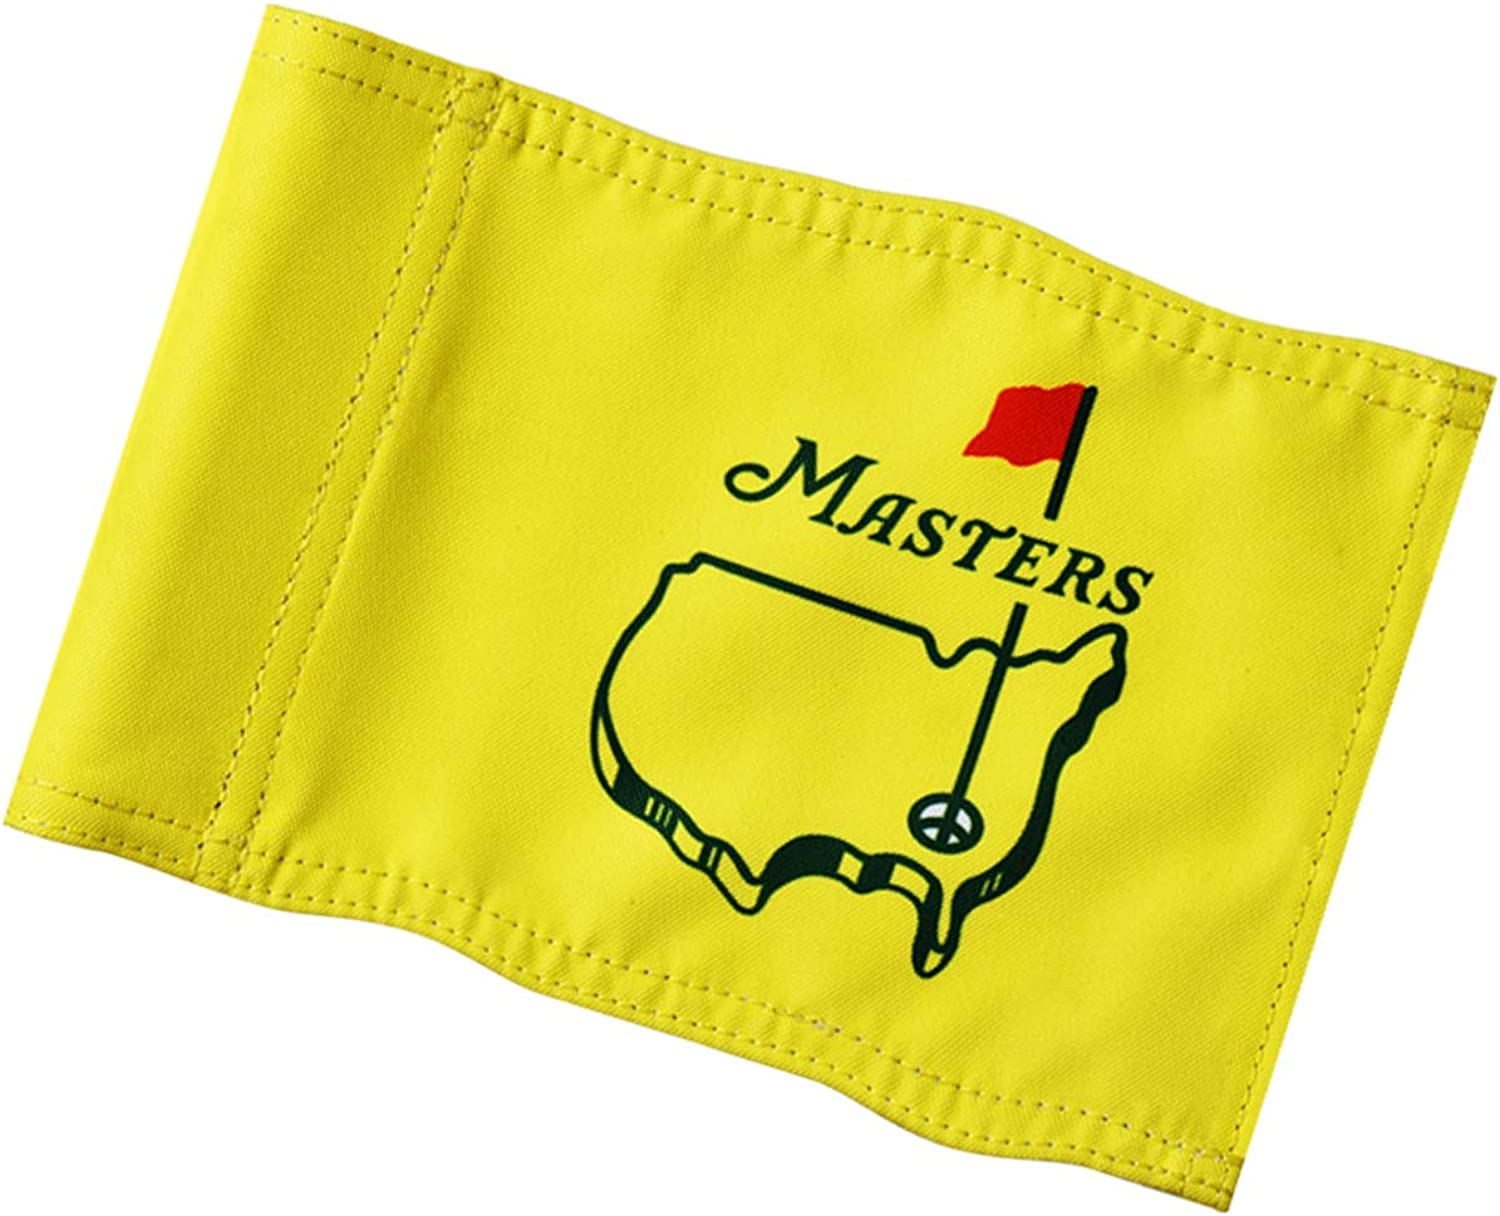 """KINGTOP Masters Golf Flag, Double-Sewn PGA Flags, Regulation Tube Flag, Practice Putting Green Flag for Yard, 600D Polyester Mini Pin Flags, 8"""" L x 6"""" H, Augusta National Putting Green Flags, 1-Pack"""